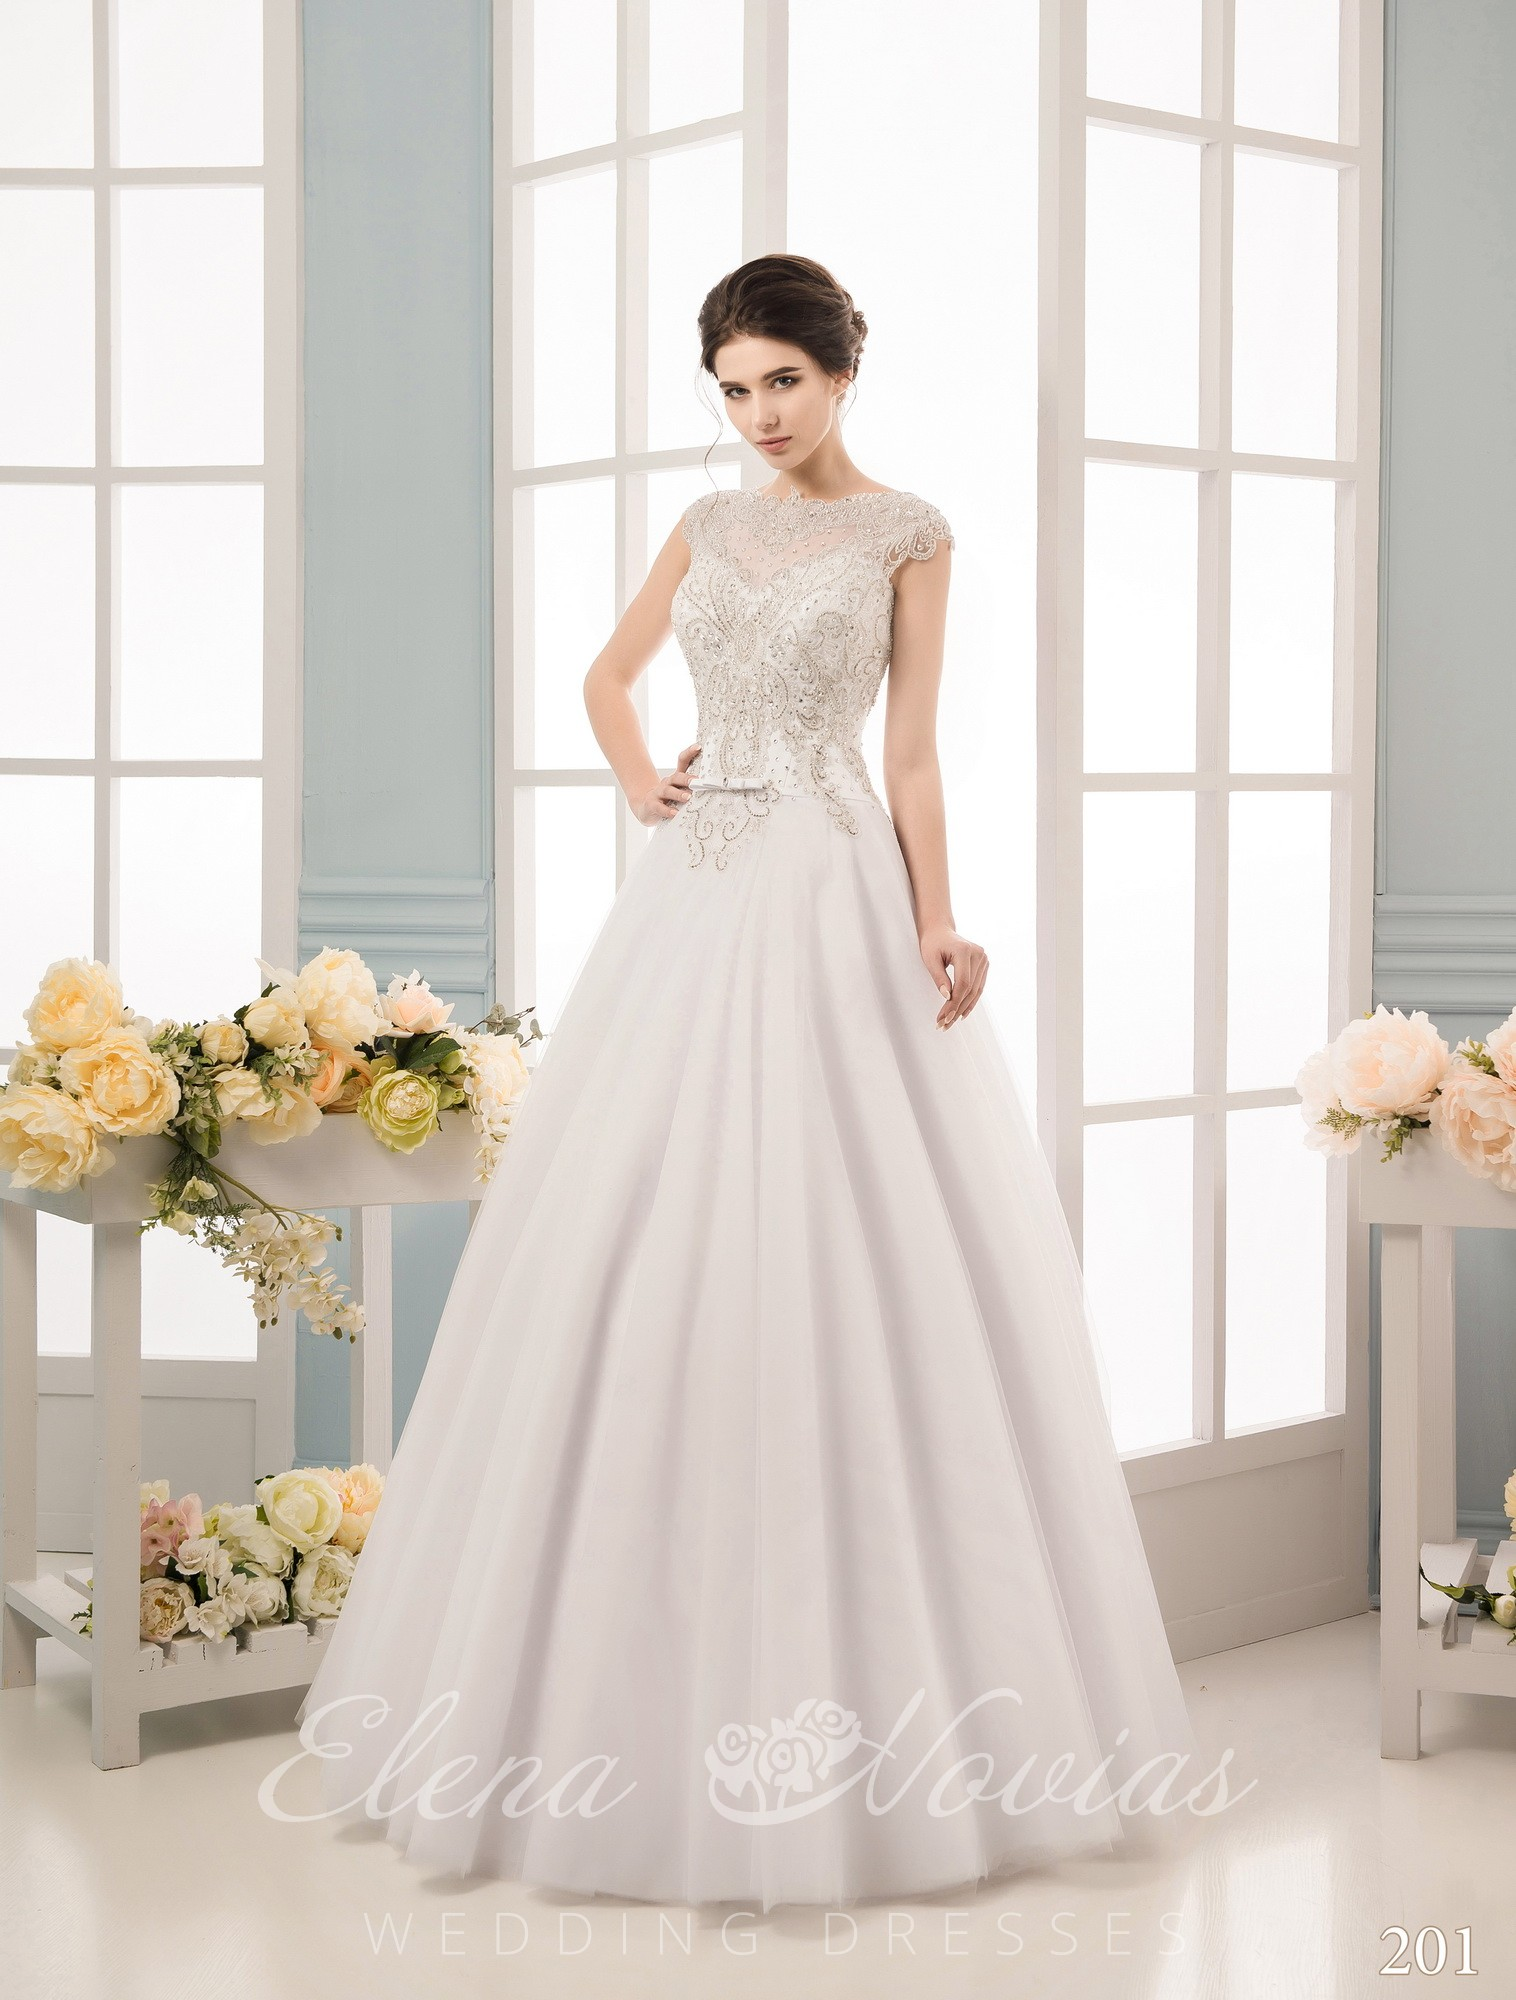 Wedding dress wholesale 201